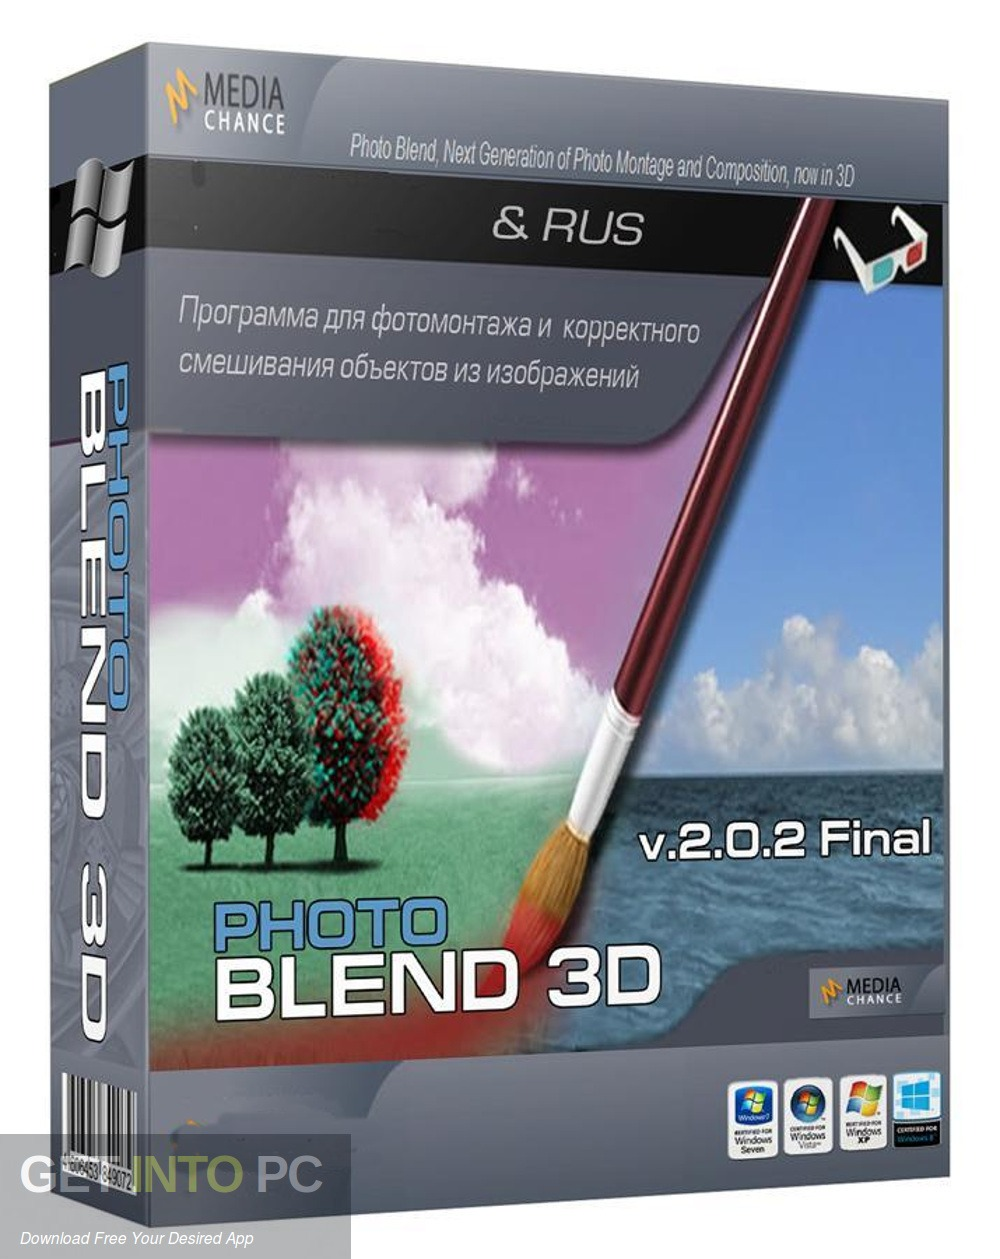 Mediachance Photo BLEND 3D Free Download - GetintoPC.com